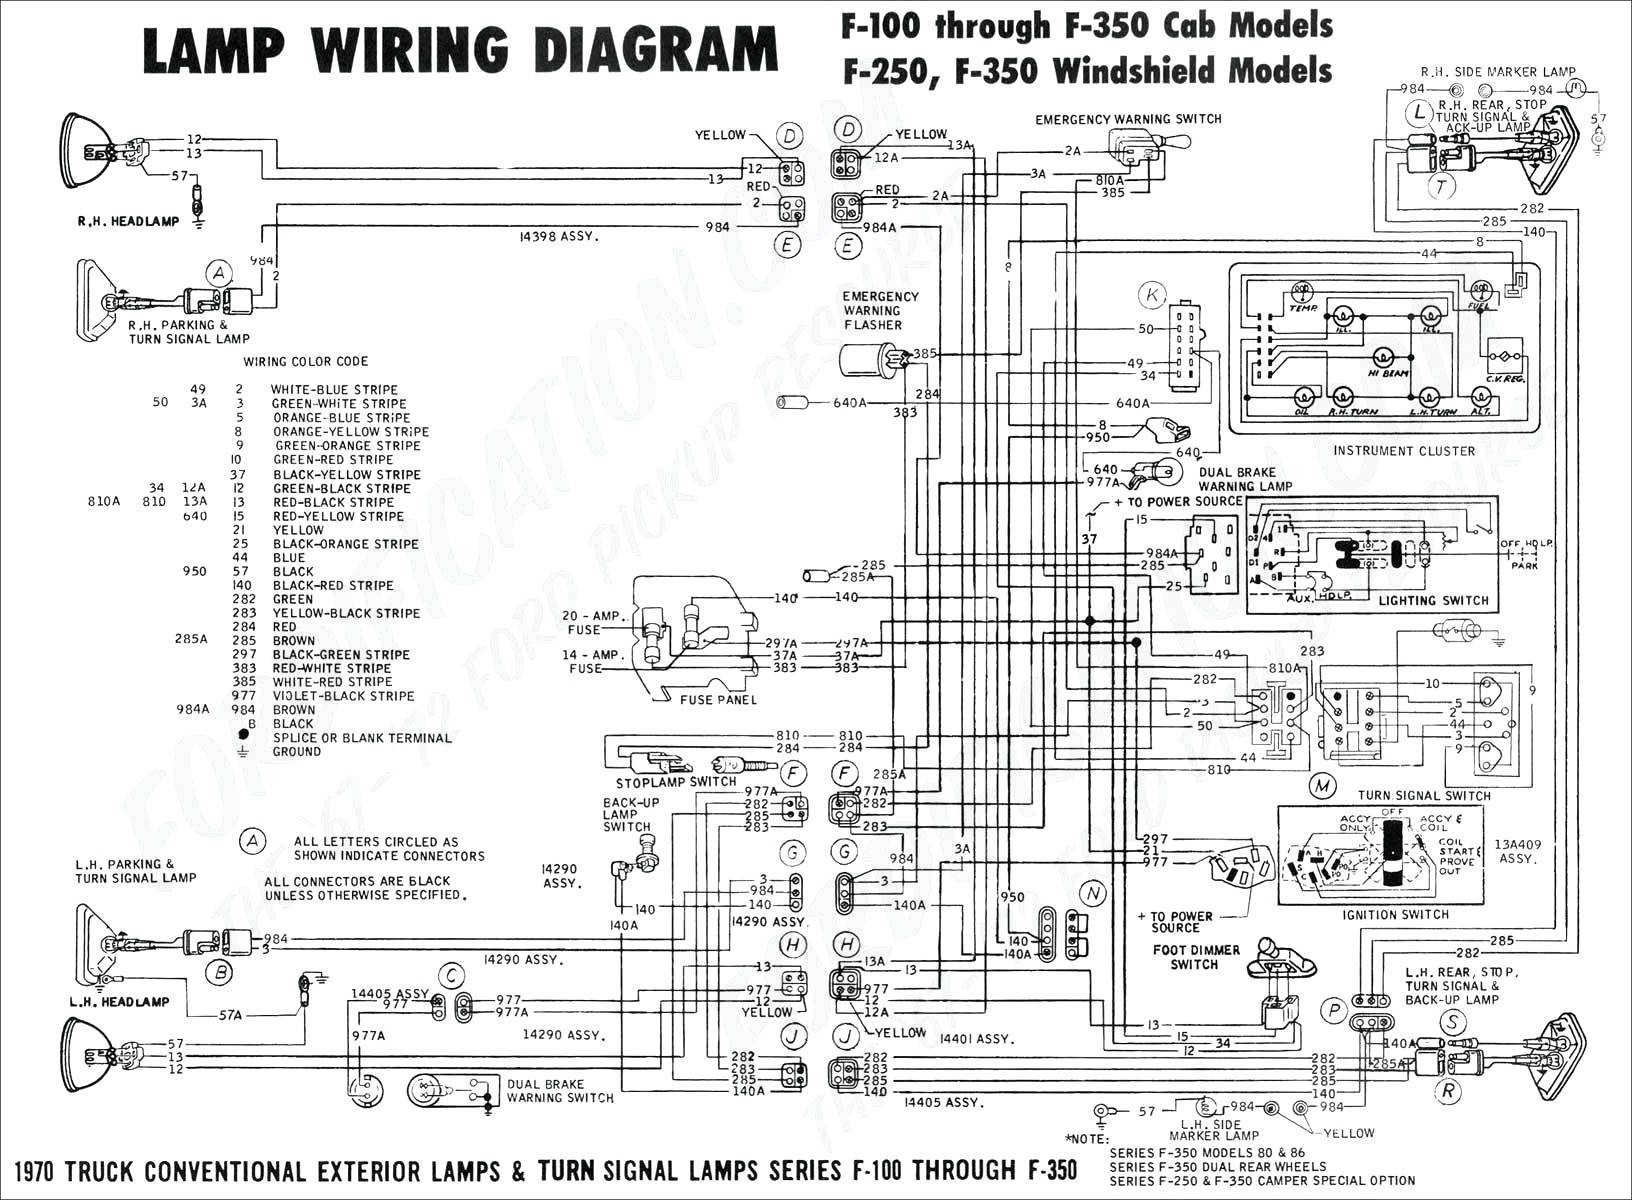 Diagram Ktm 990 Smr Wiring Diagram Full Version Hd Quality Wiring Diagram Diagramtshirt Ristoranteeremo It